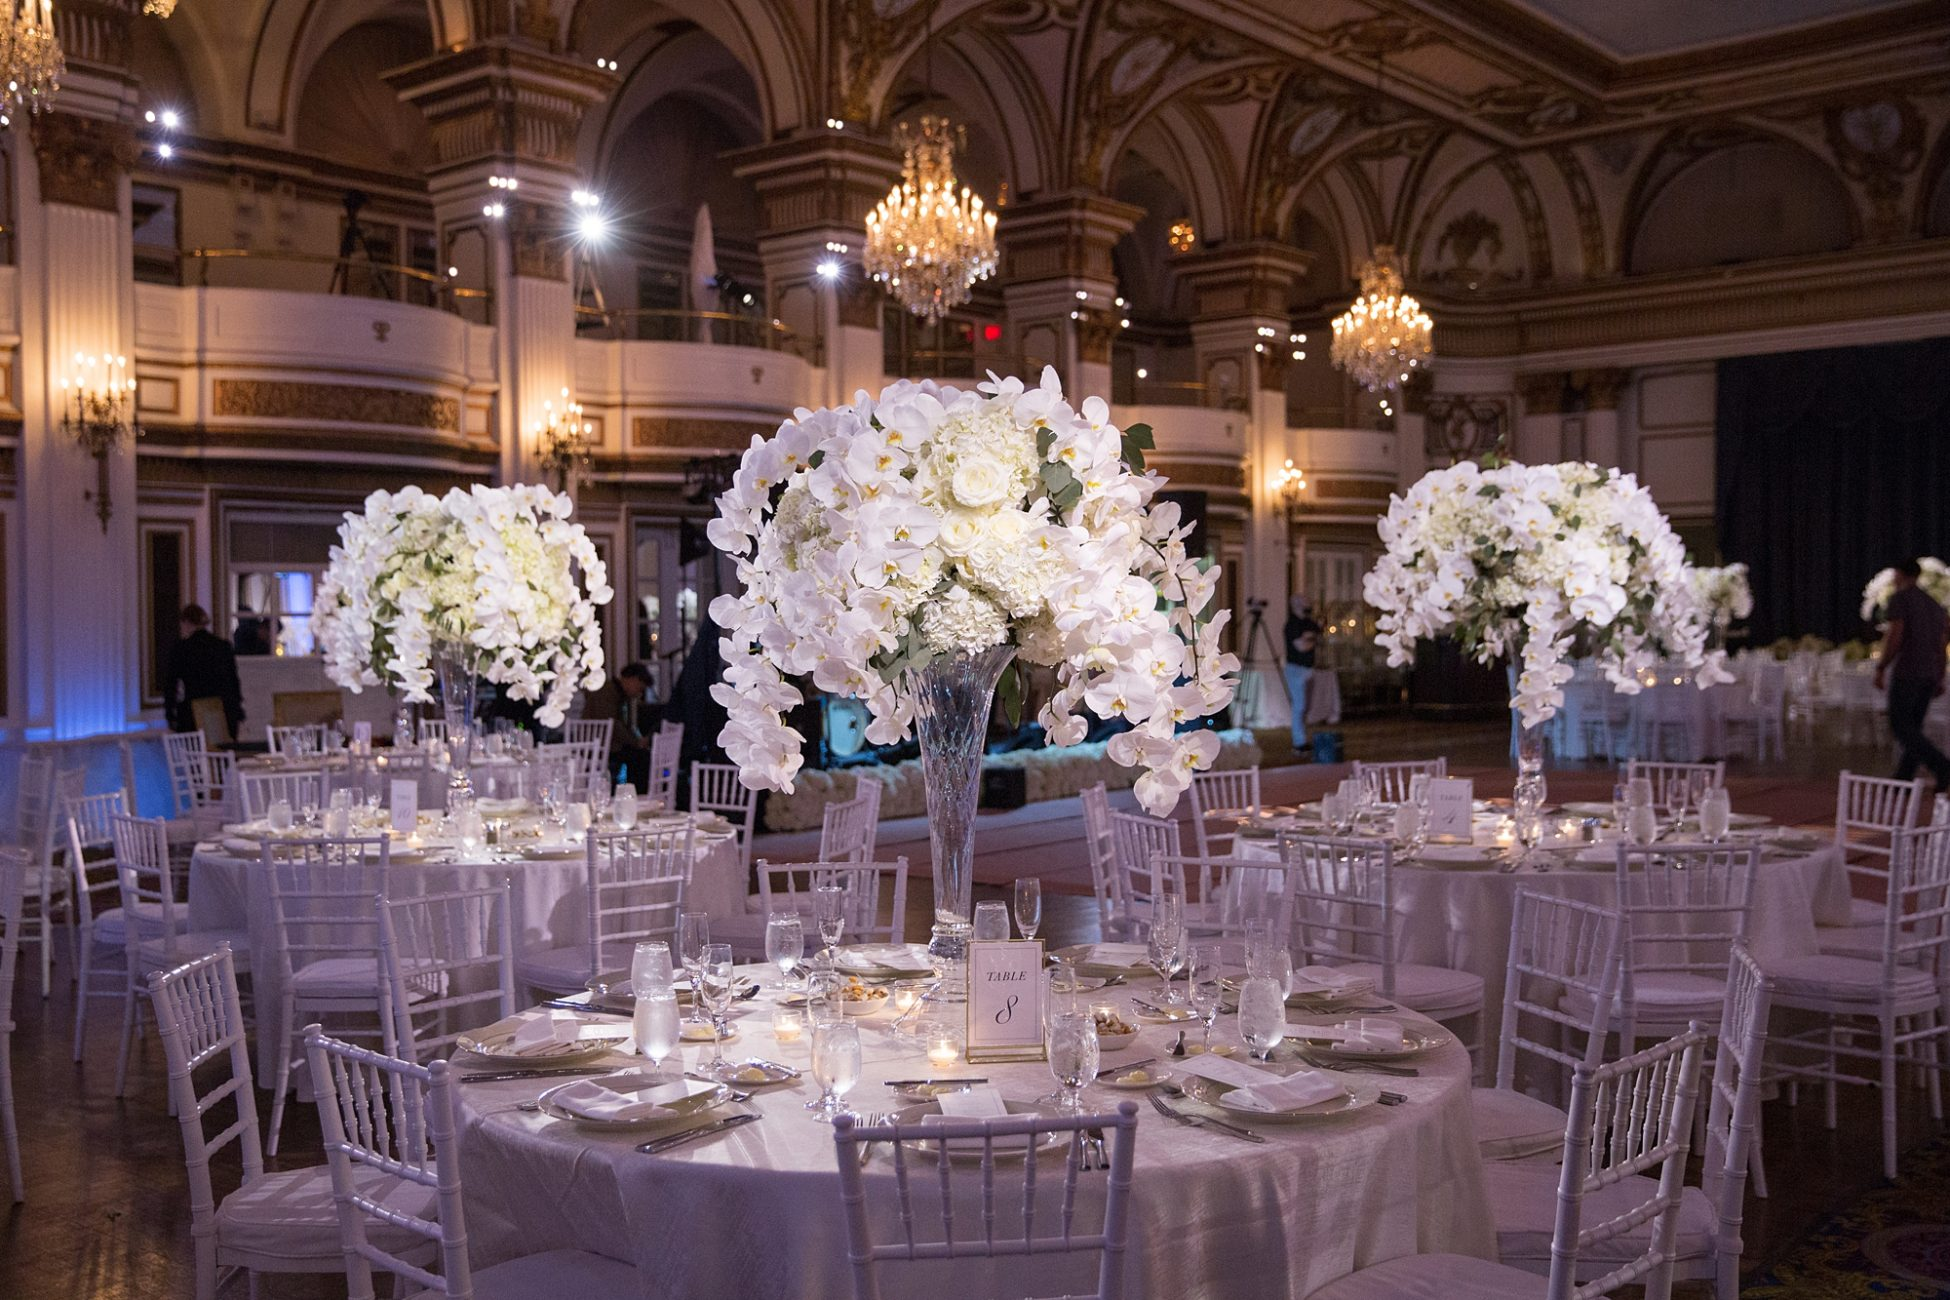 fairmont copley plaza wedding in the ballroom with orchid centerpieces